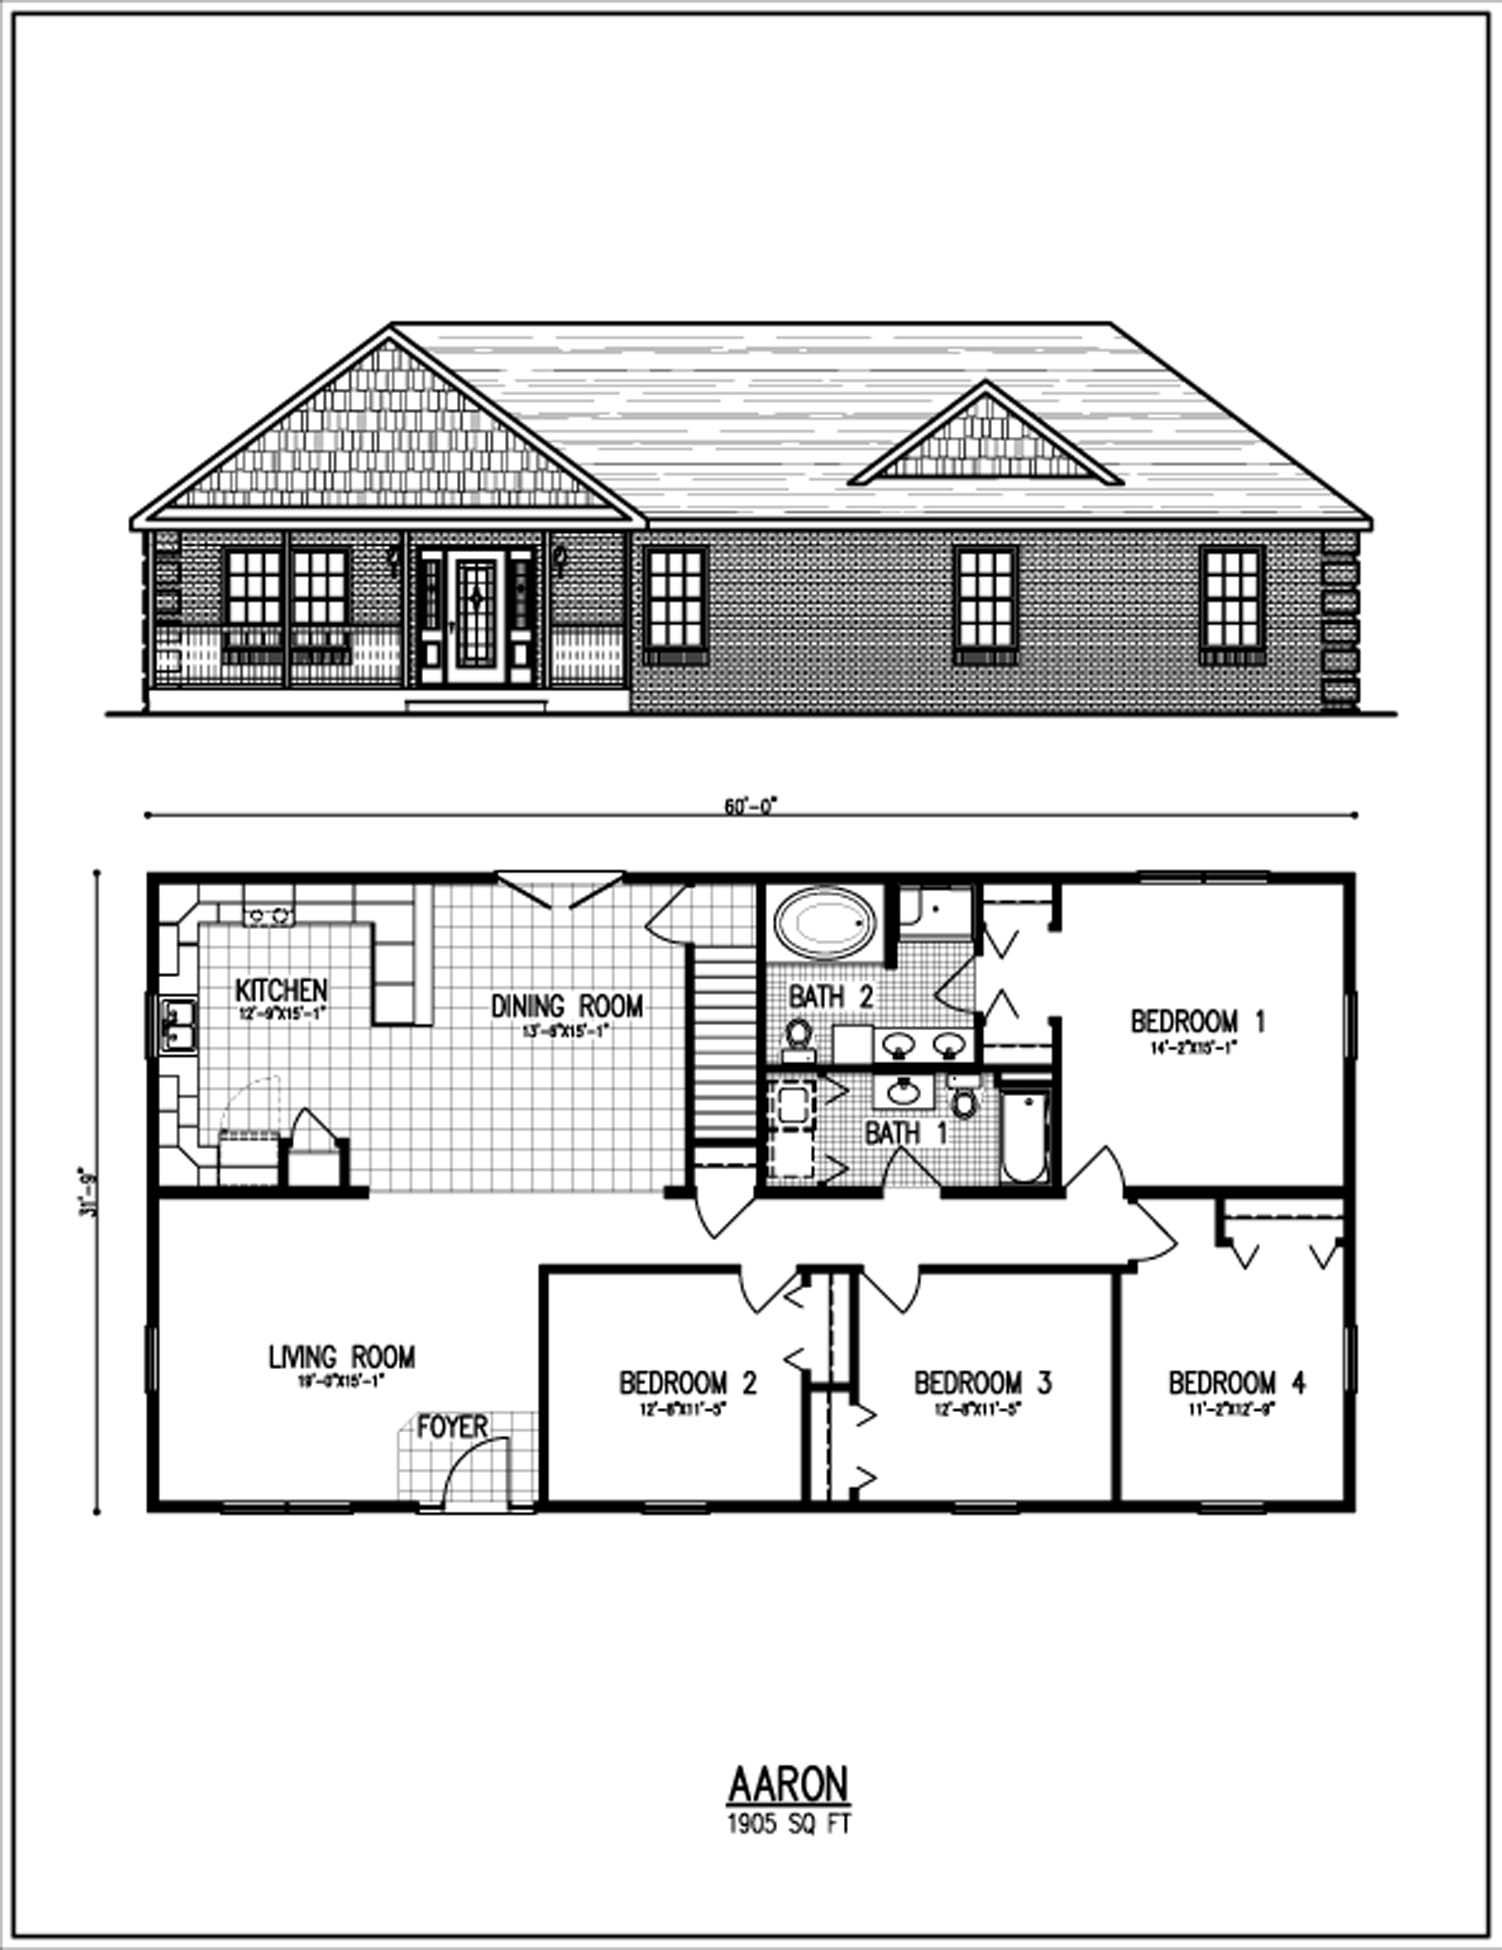 All American Homes Floorplan Center Staffordcape: ranch home plans